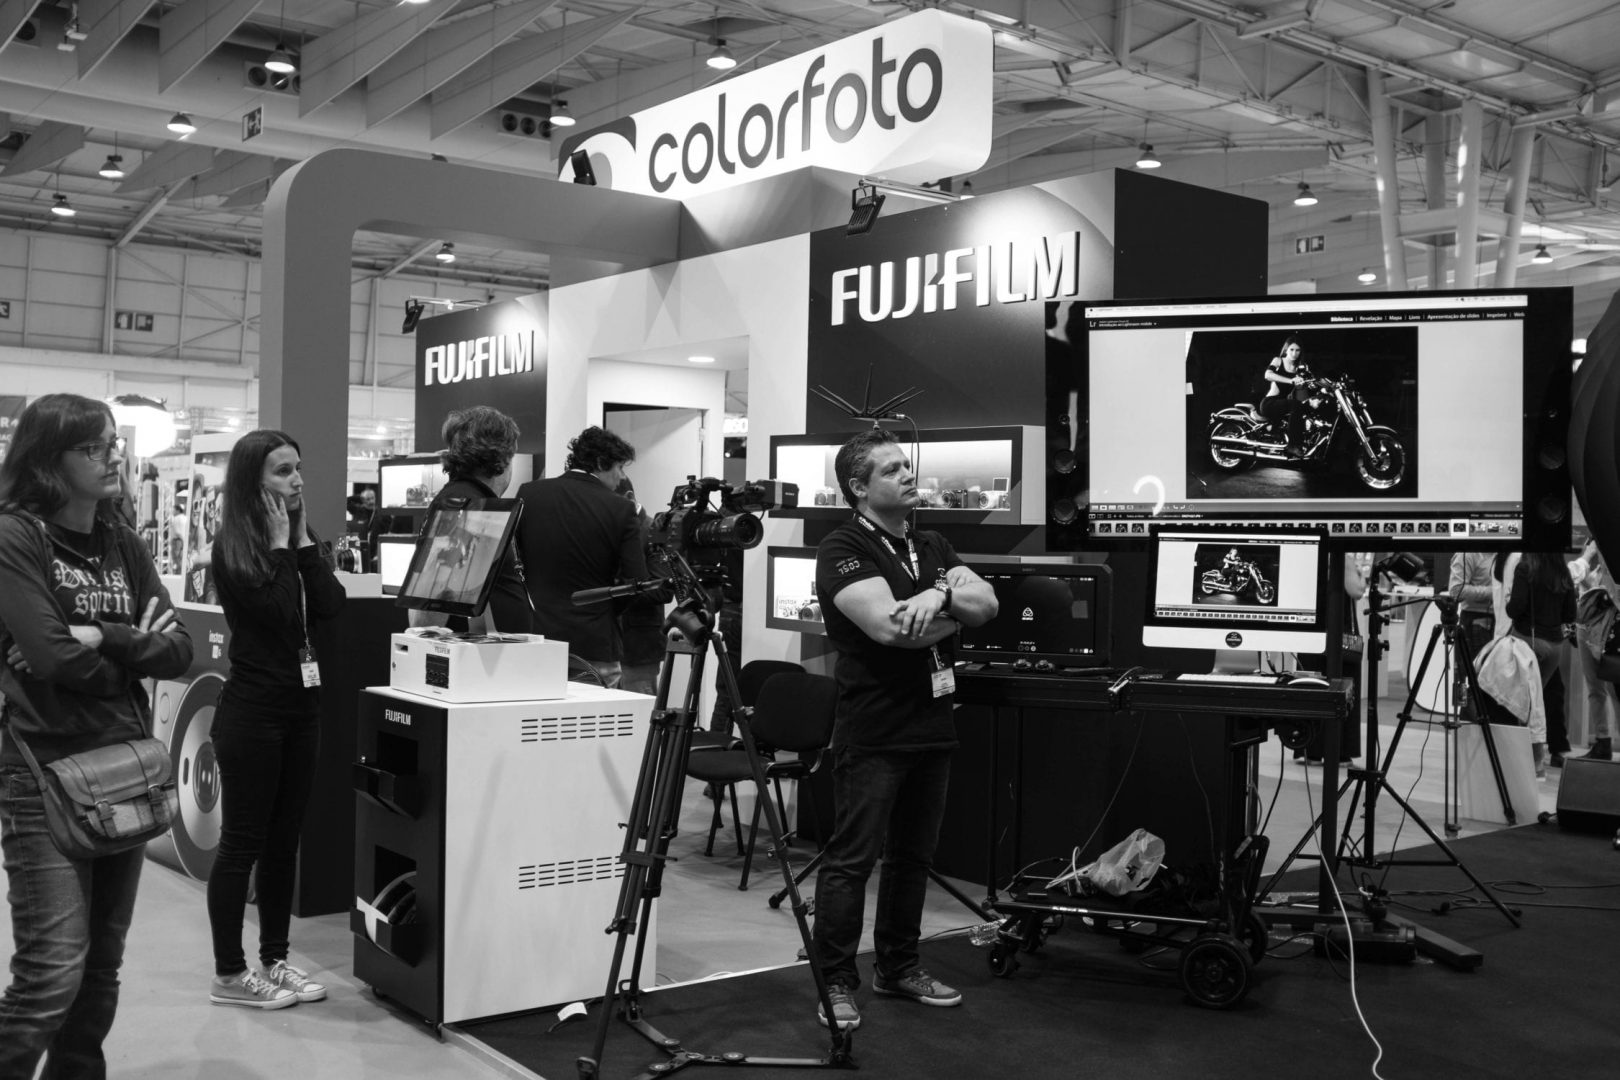 Eduardo Lima from Colorfoto always available to help